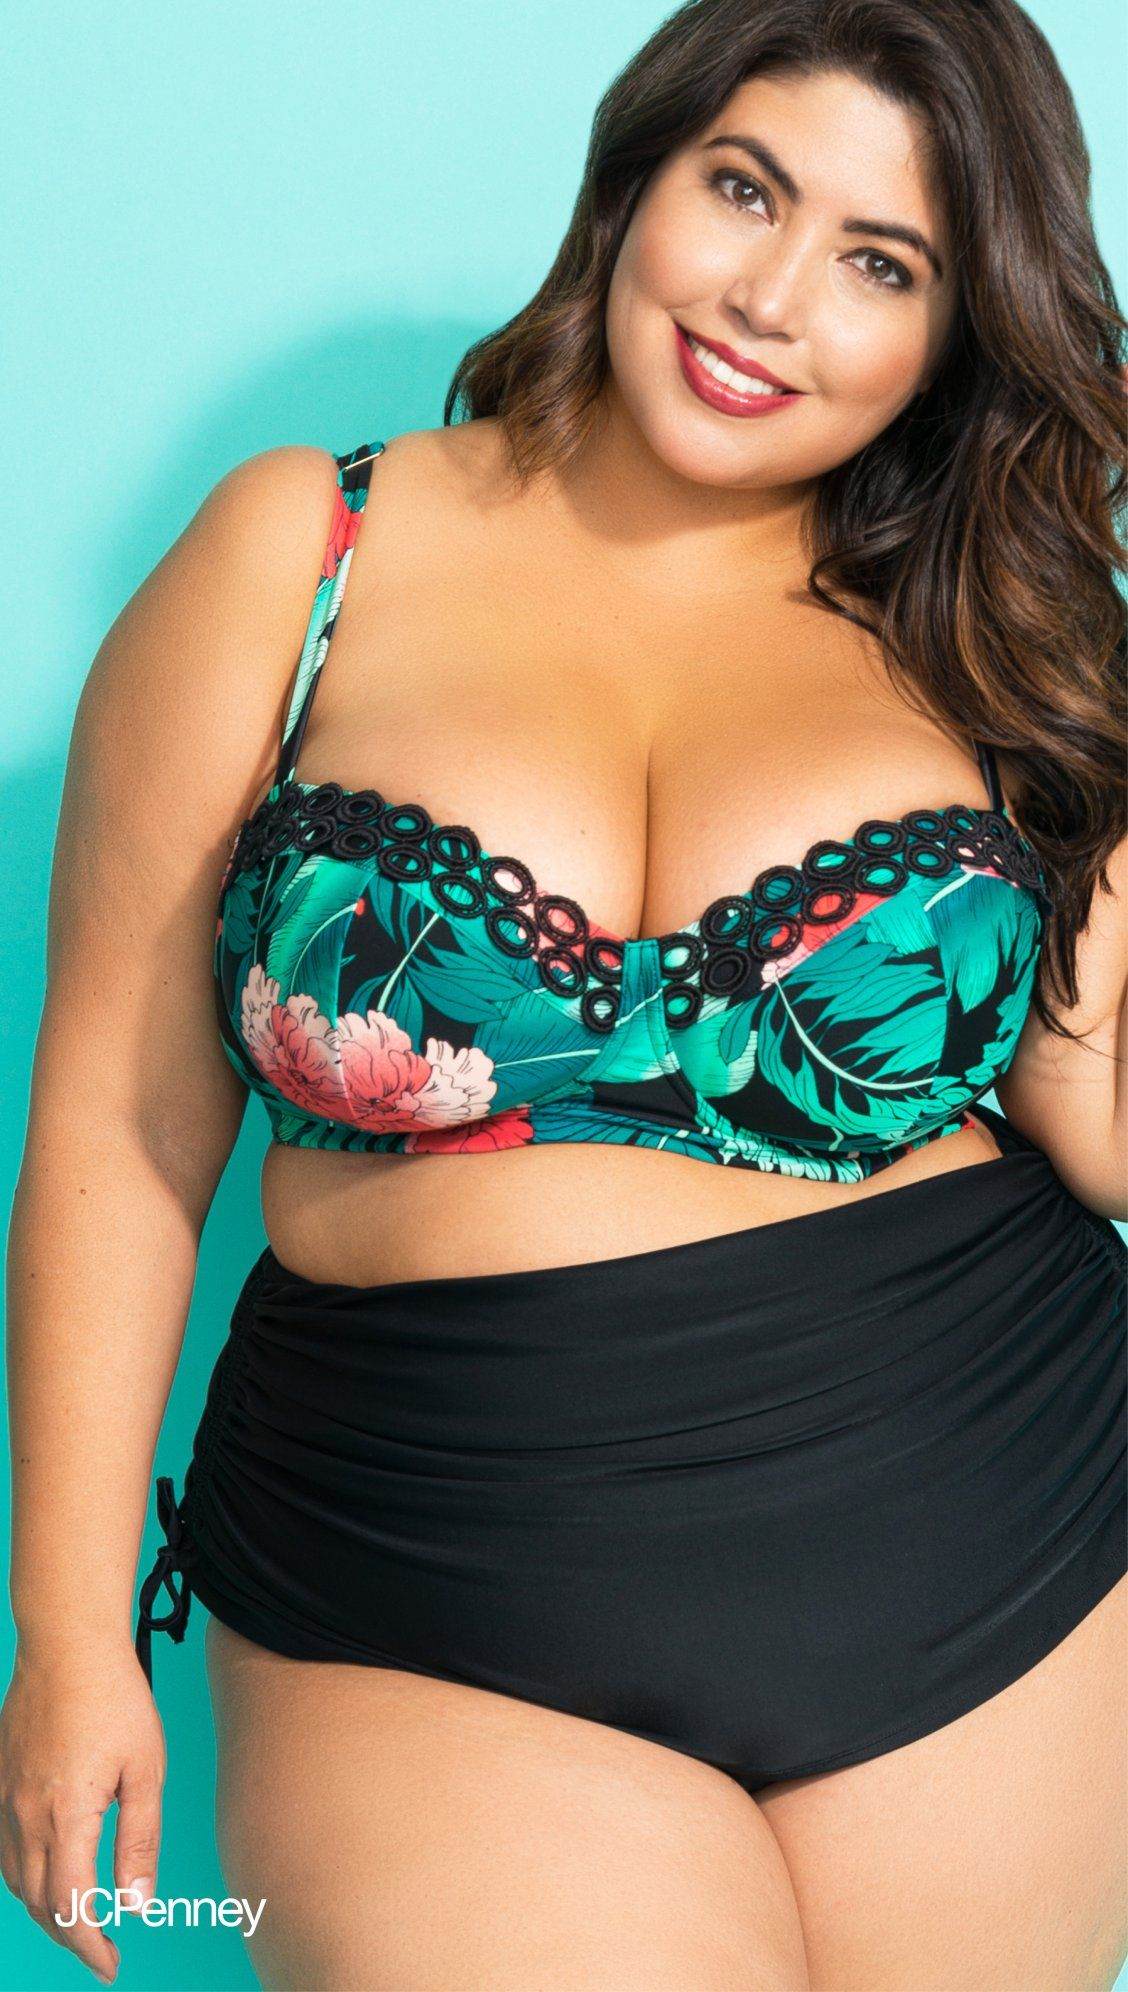 b9ebc16c64f13 Looking for high waist bathing suits for curvy girls? We have just the  thing—the all new Boutique Plus swimwear in collaboration with plus size  model ...